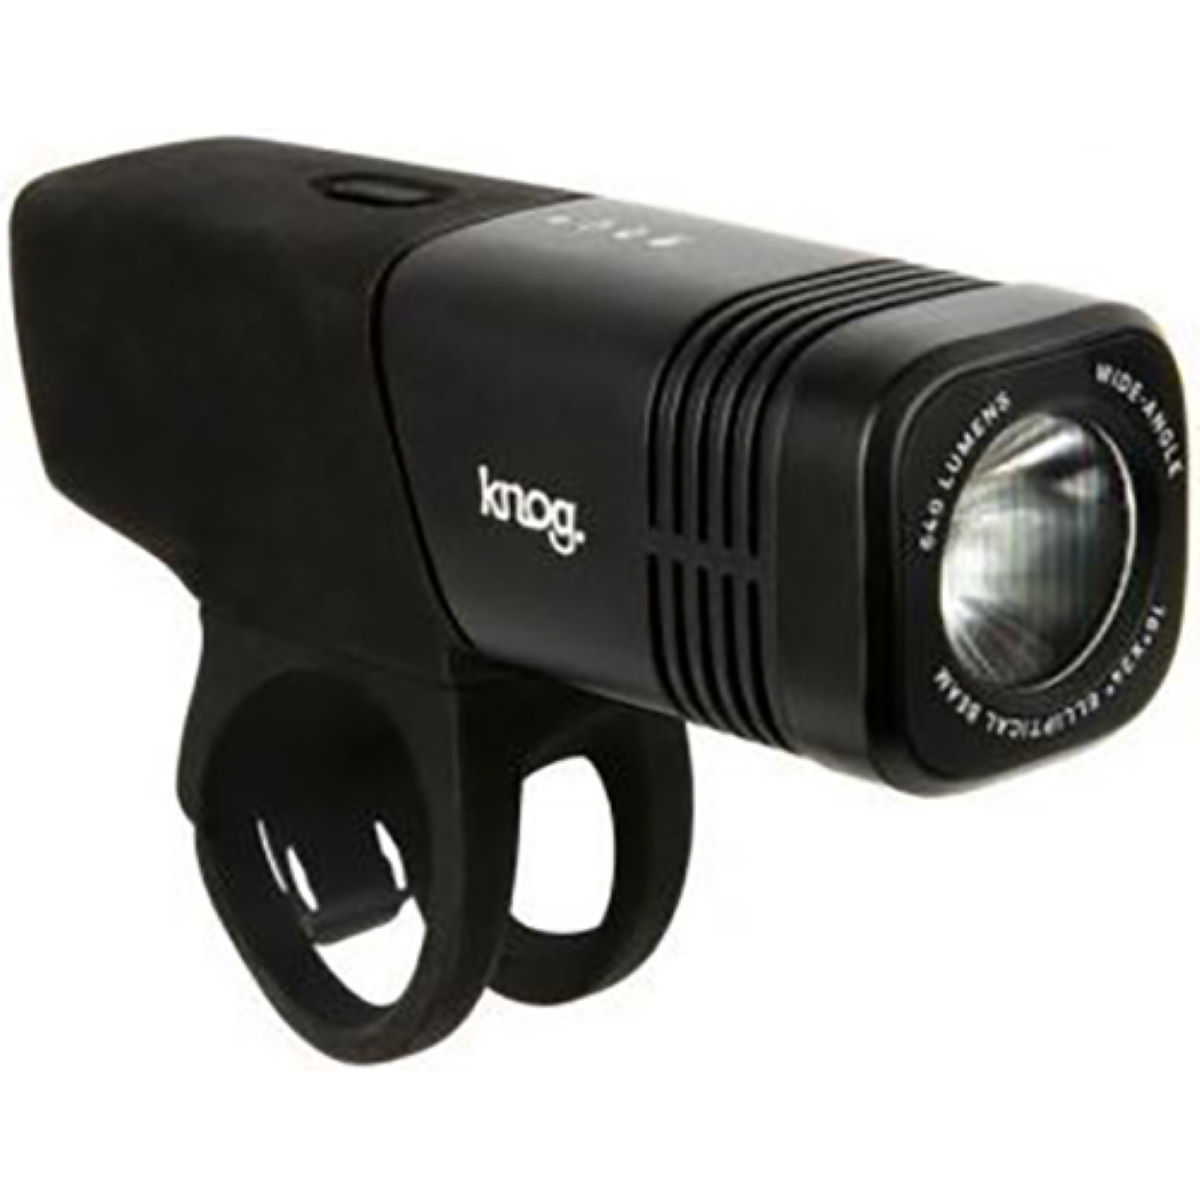 Knog Blinder Arc 640 Front Light - Luces delanteras